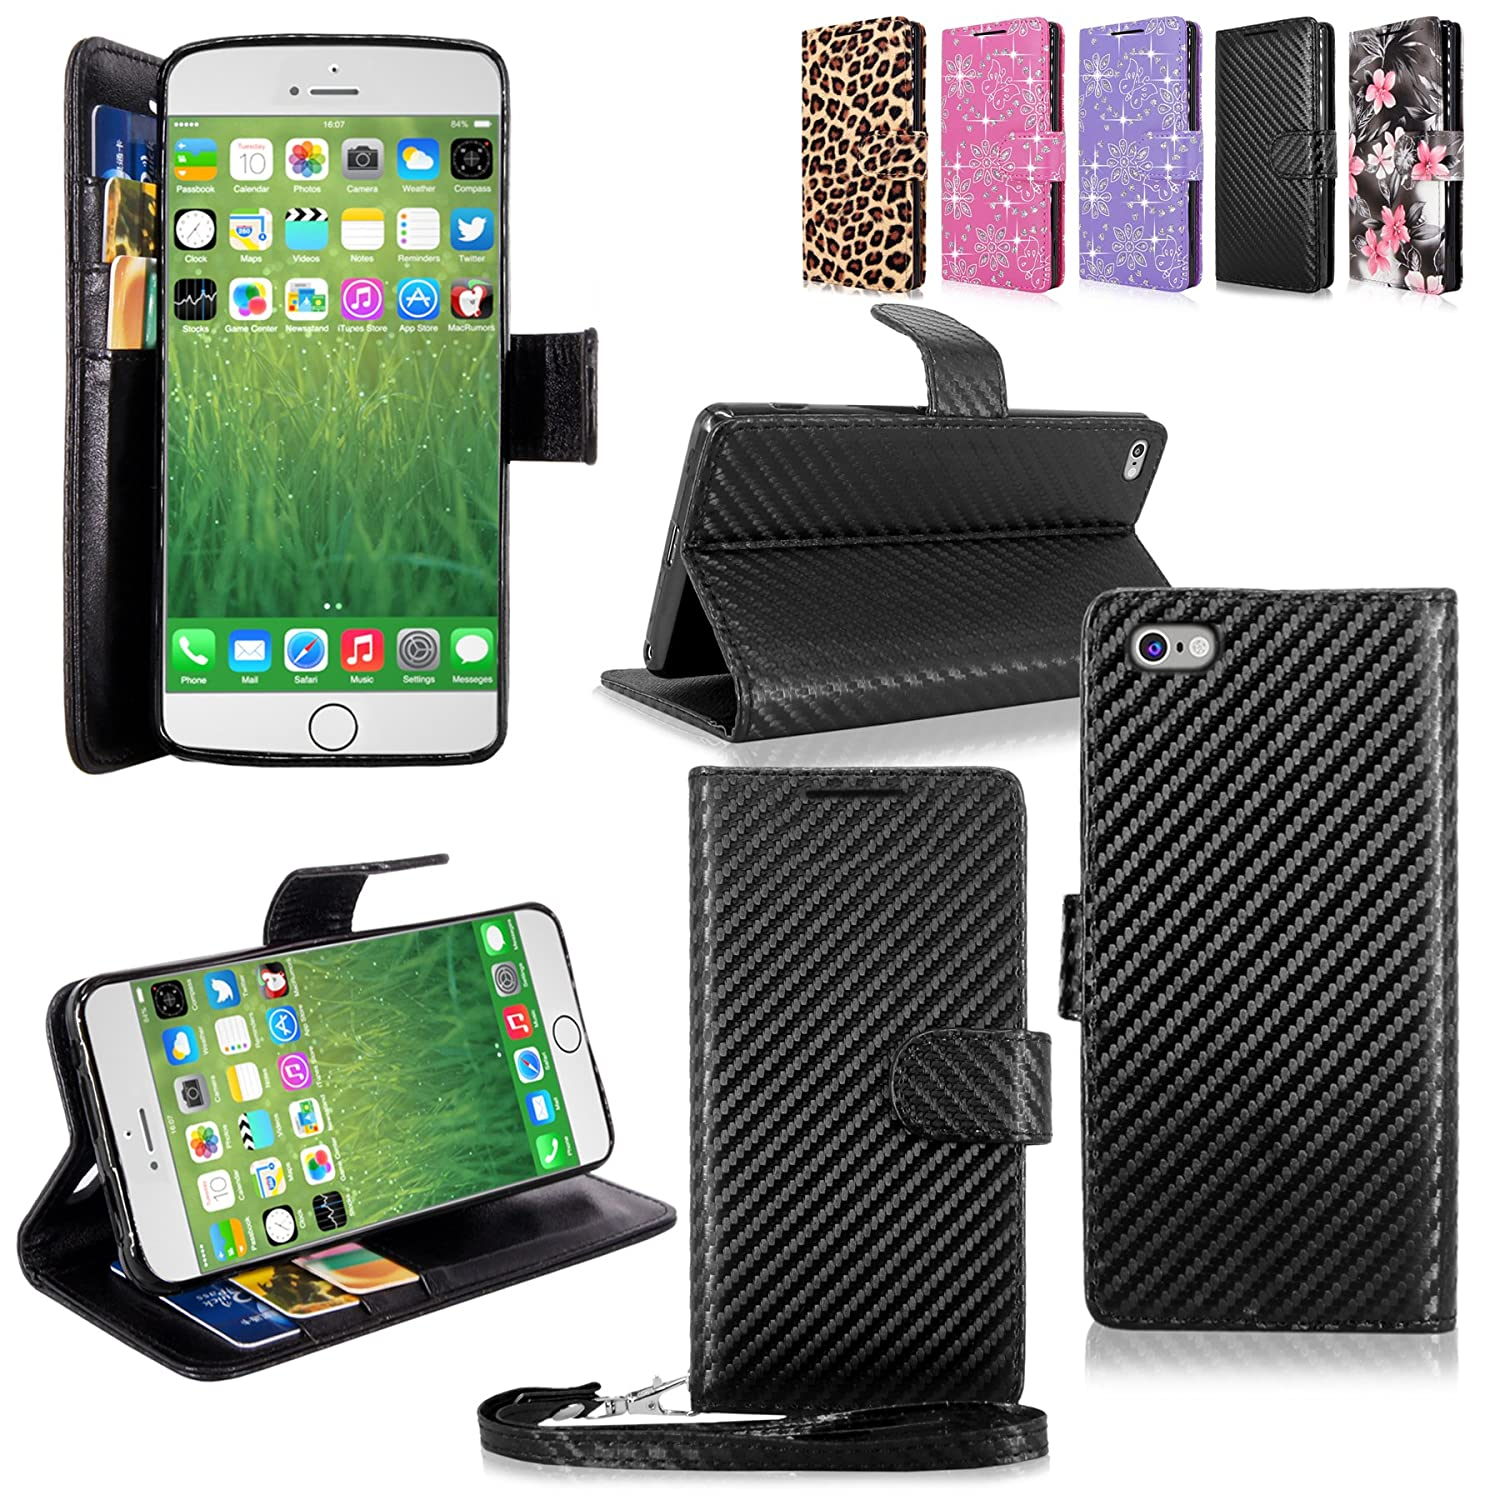 iPhone Cellularvilla Wallet Premium Leather Image 1